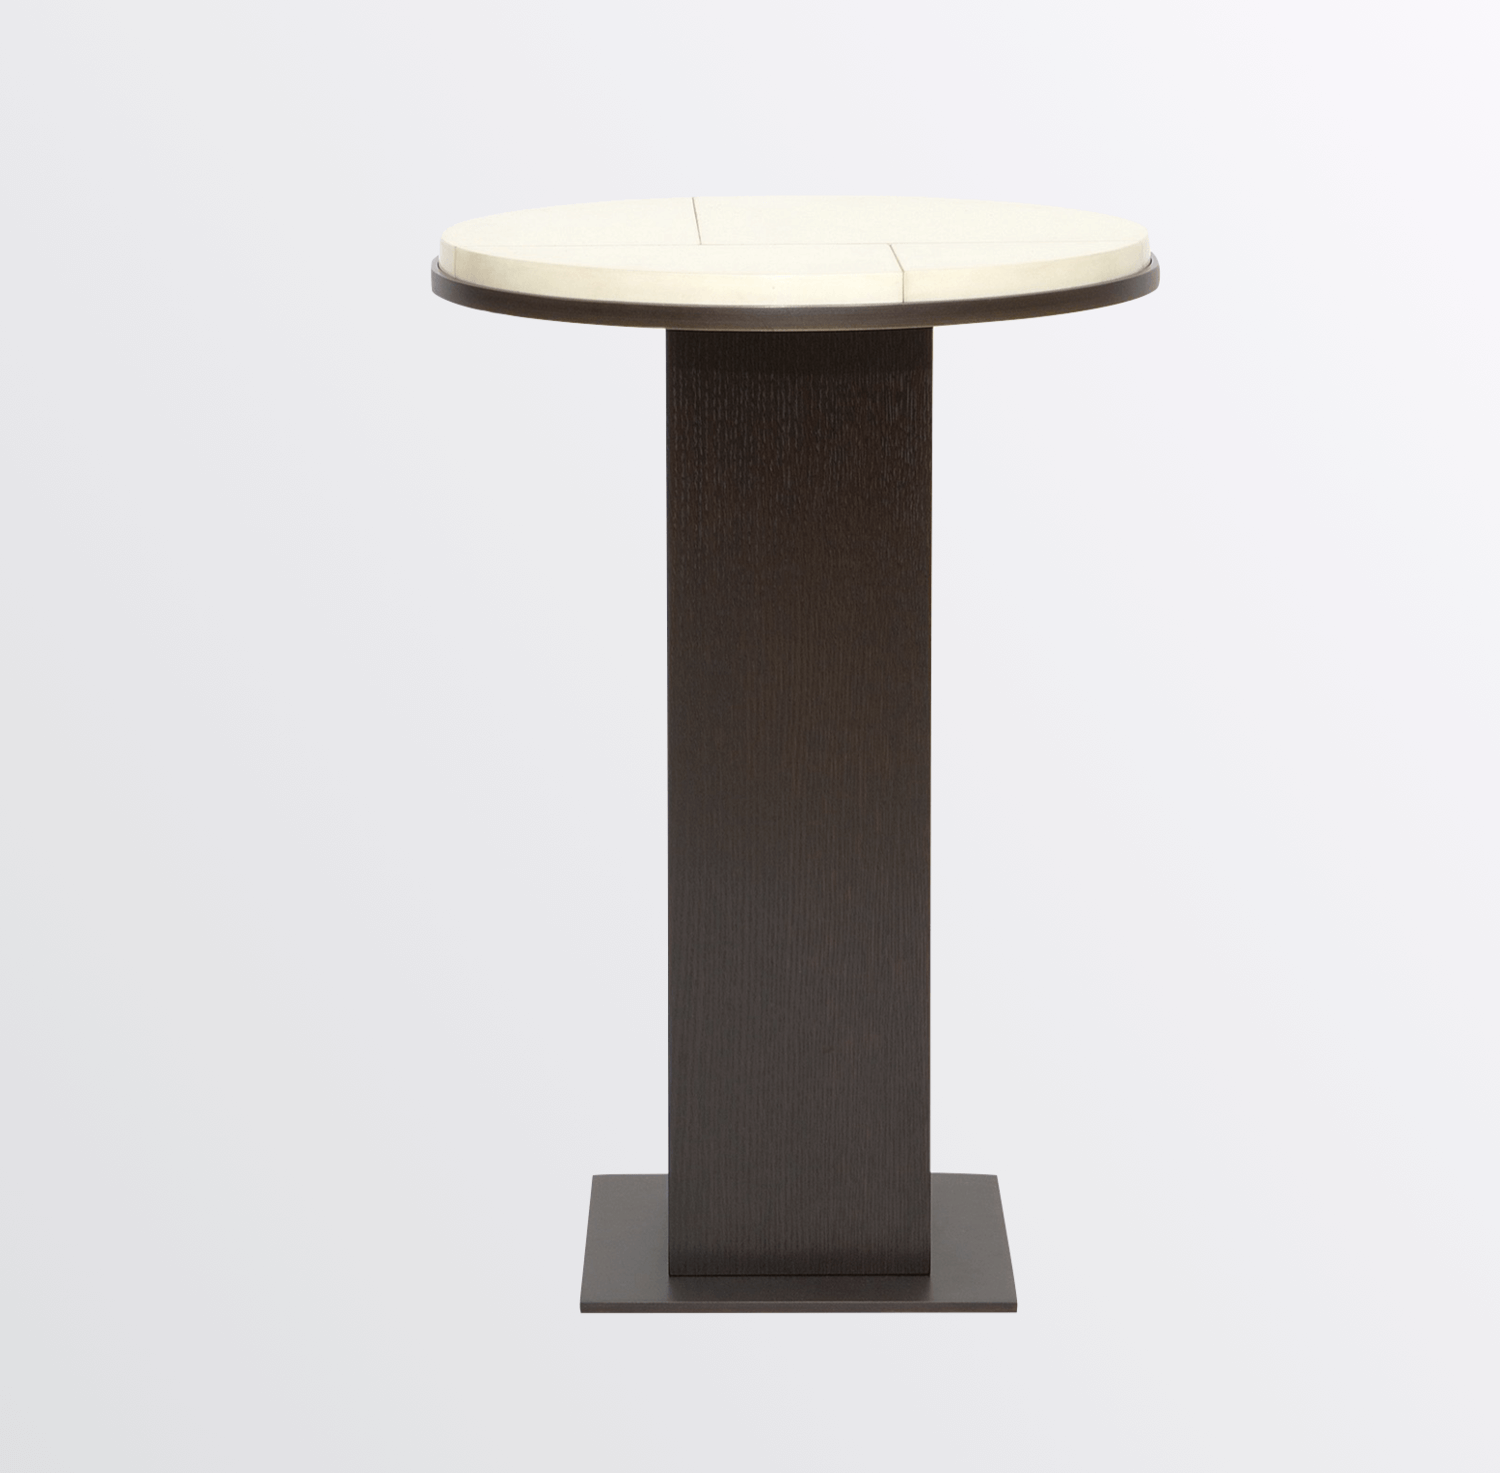 Aguirre Design - Round Parchment Side Table with Brass and Oak Pedestal